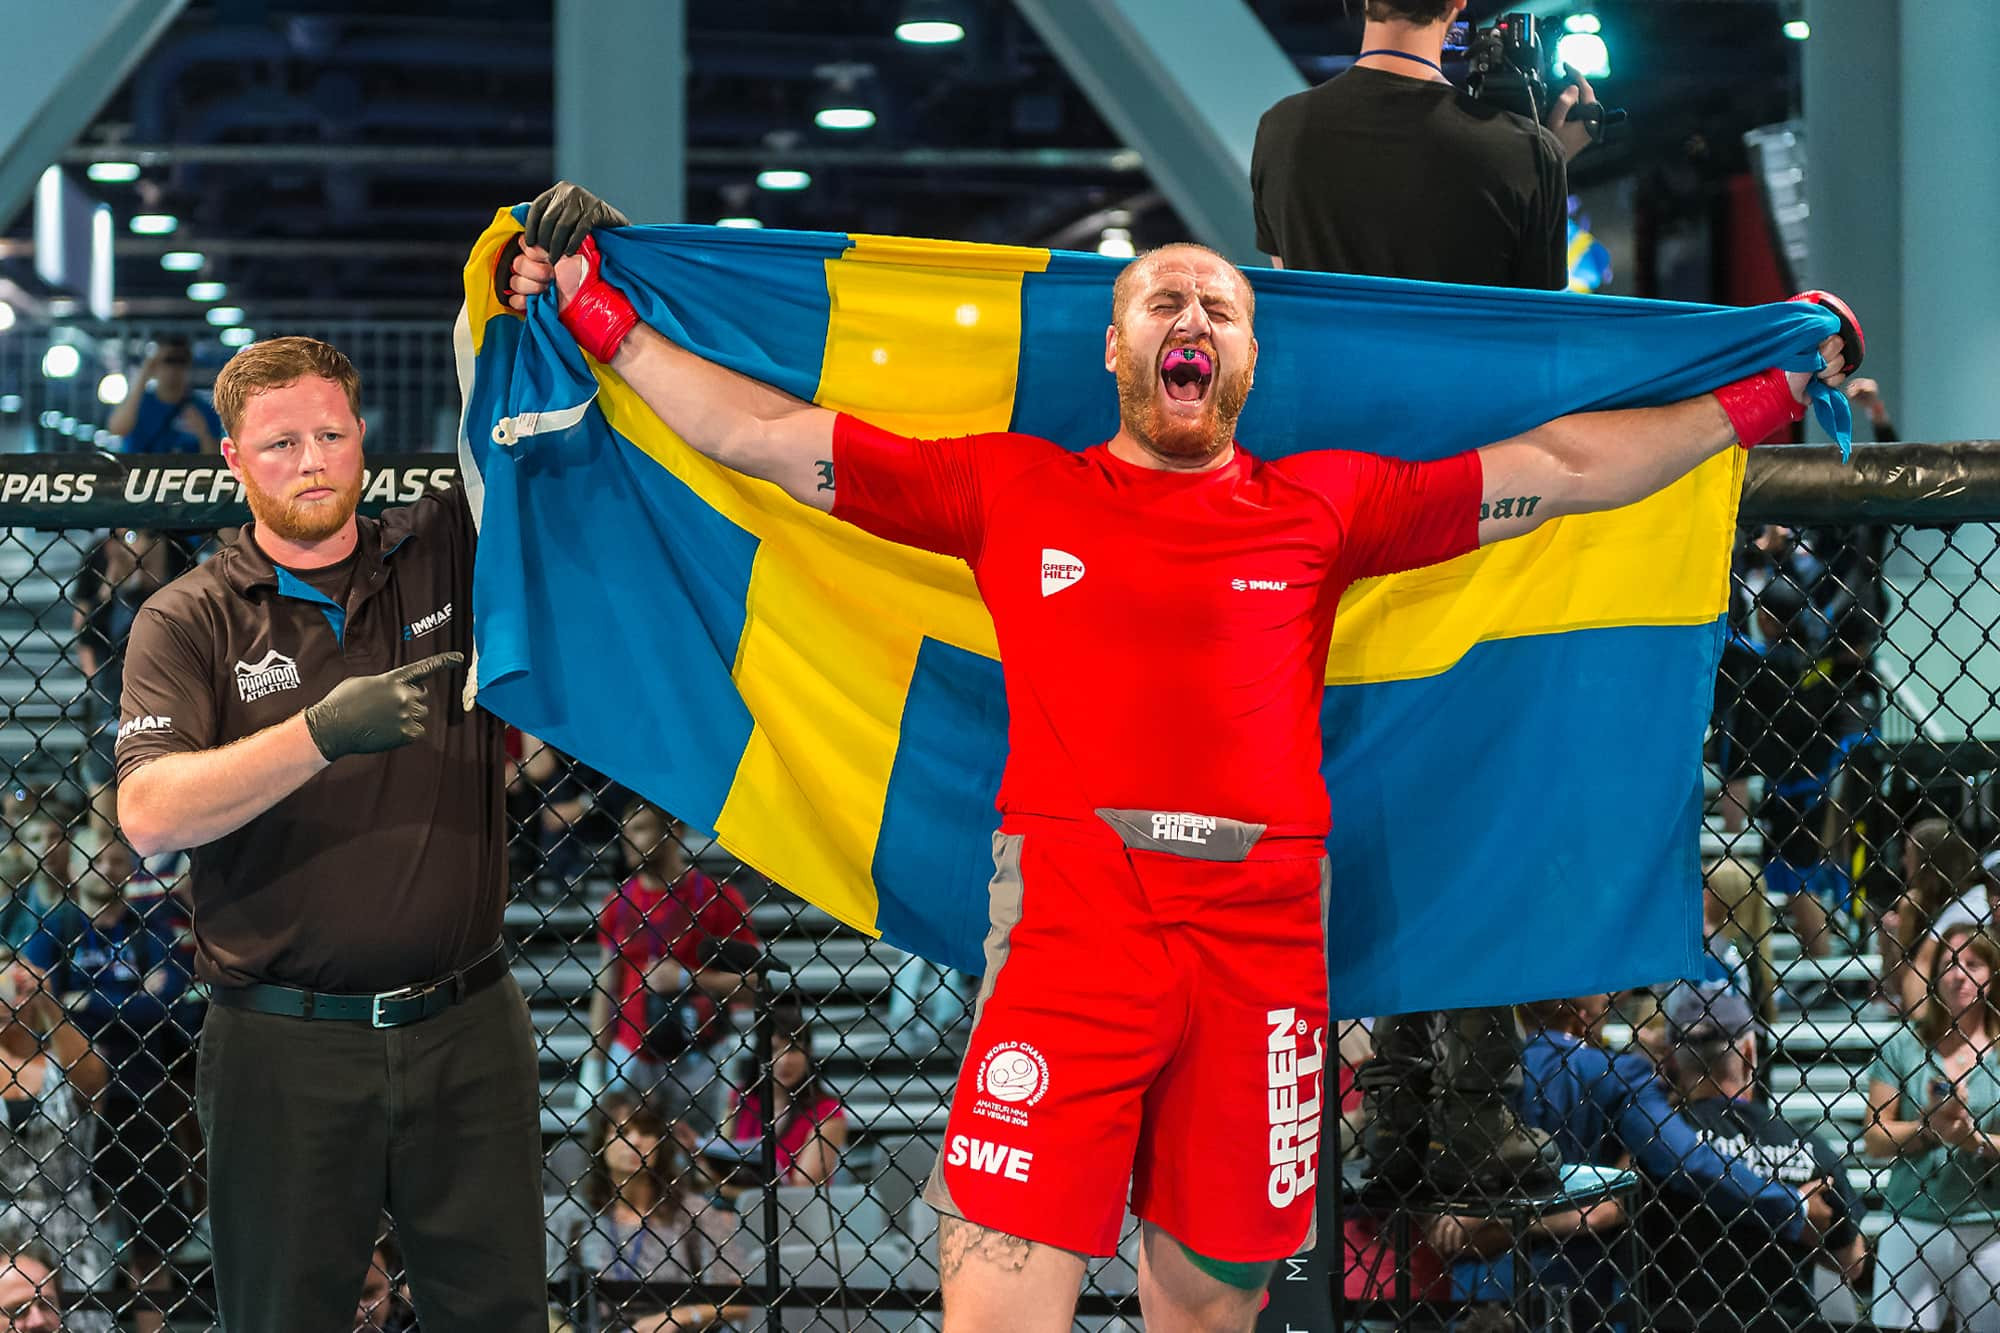 IMMAF Athletes' Commission chairman Irman Smajic oversaw some of the changes to athletes rights ©IMMAF